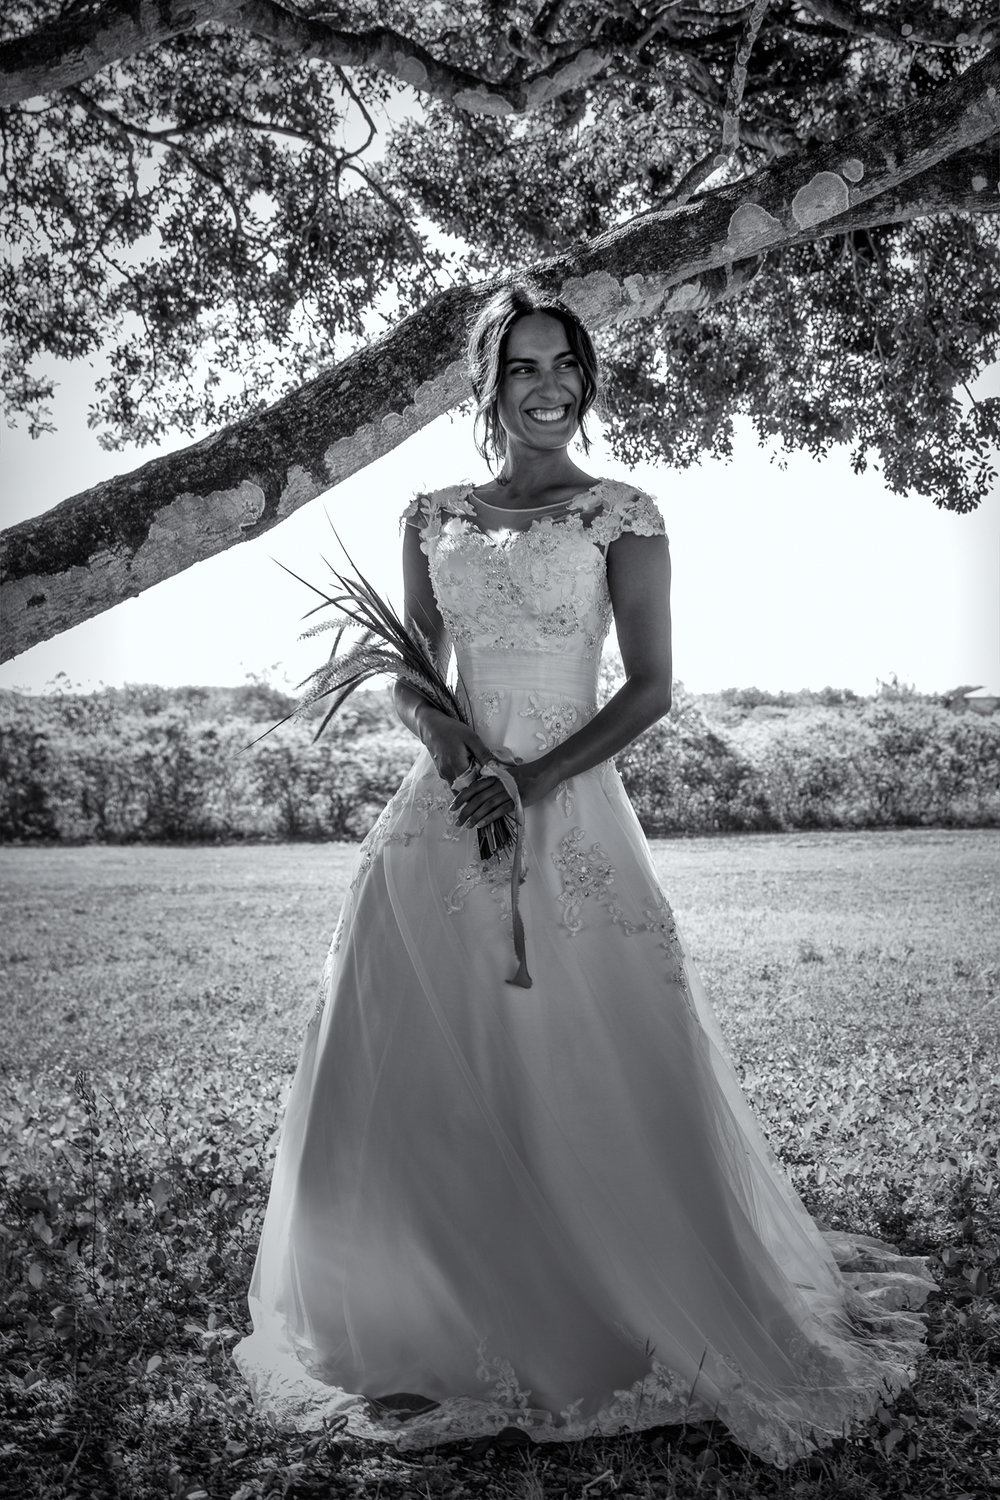 natural princess wedding dress black and white photography inspiration